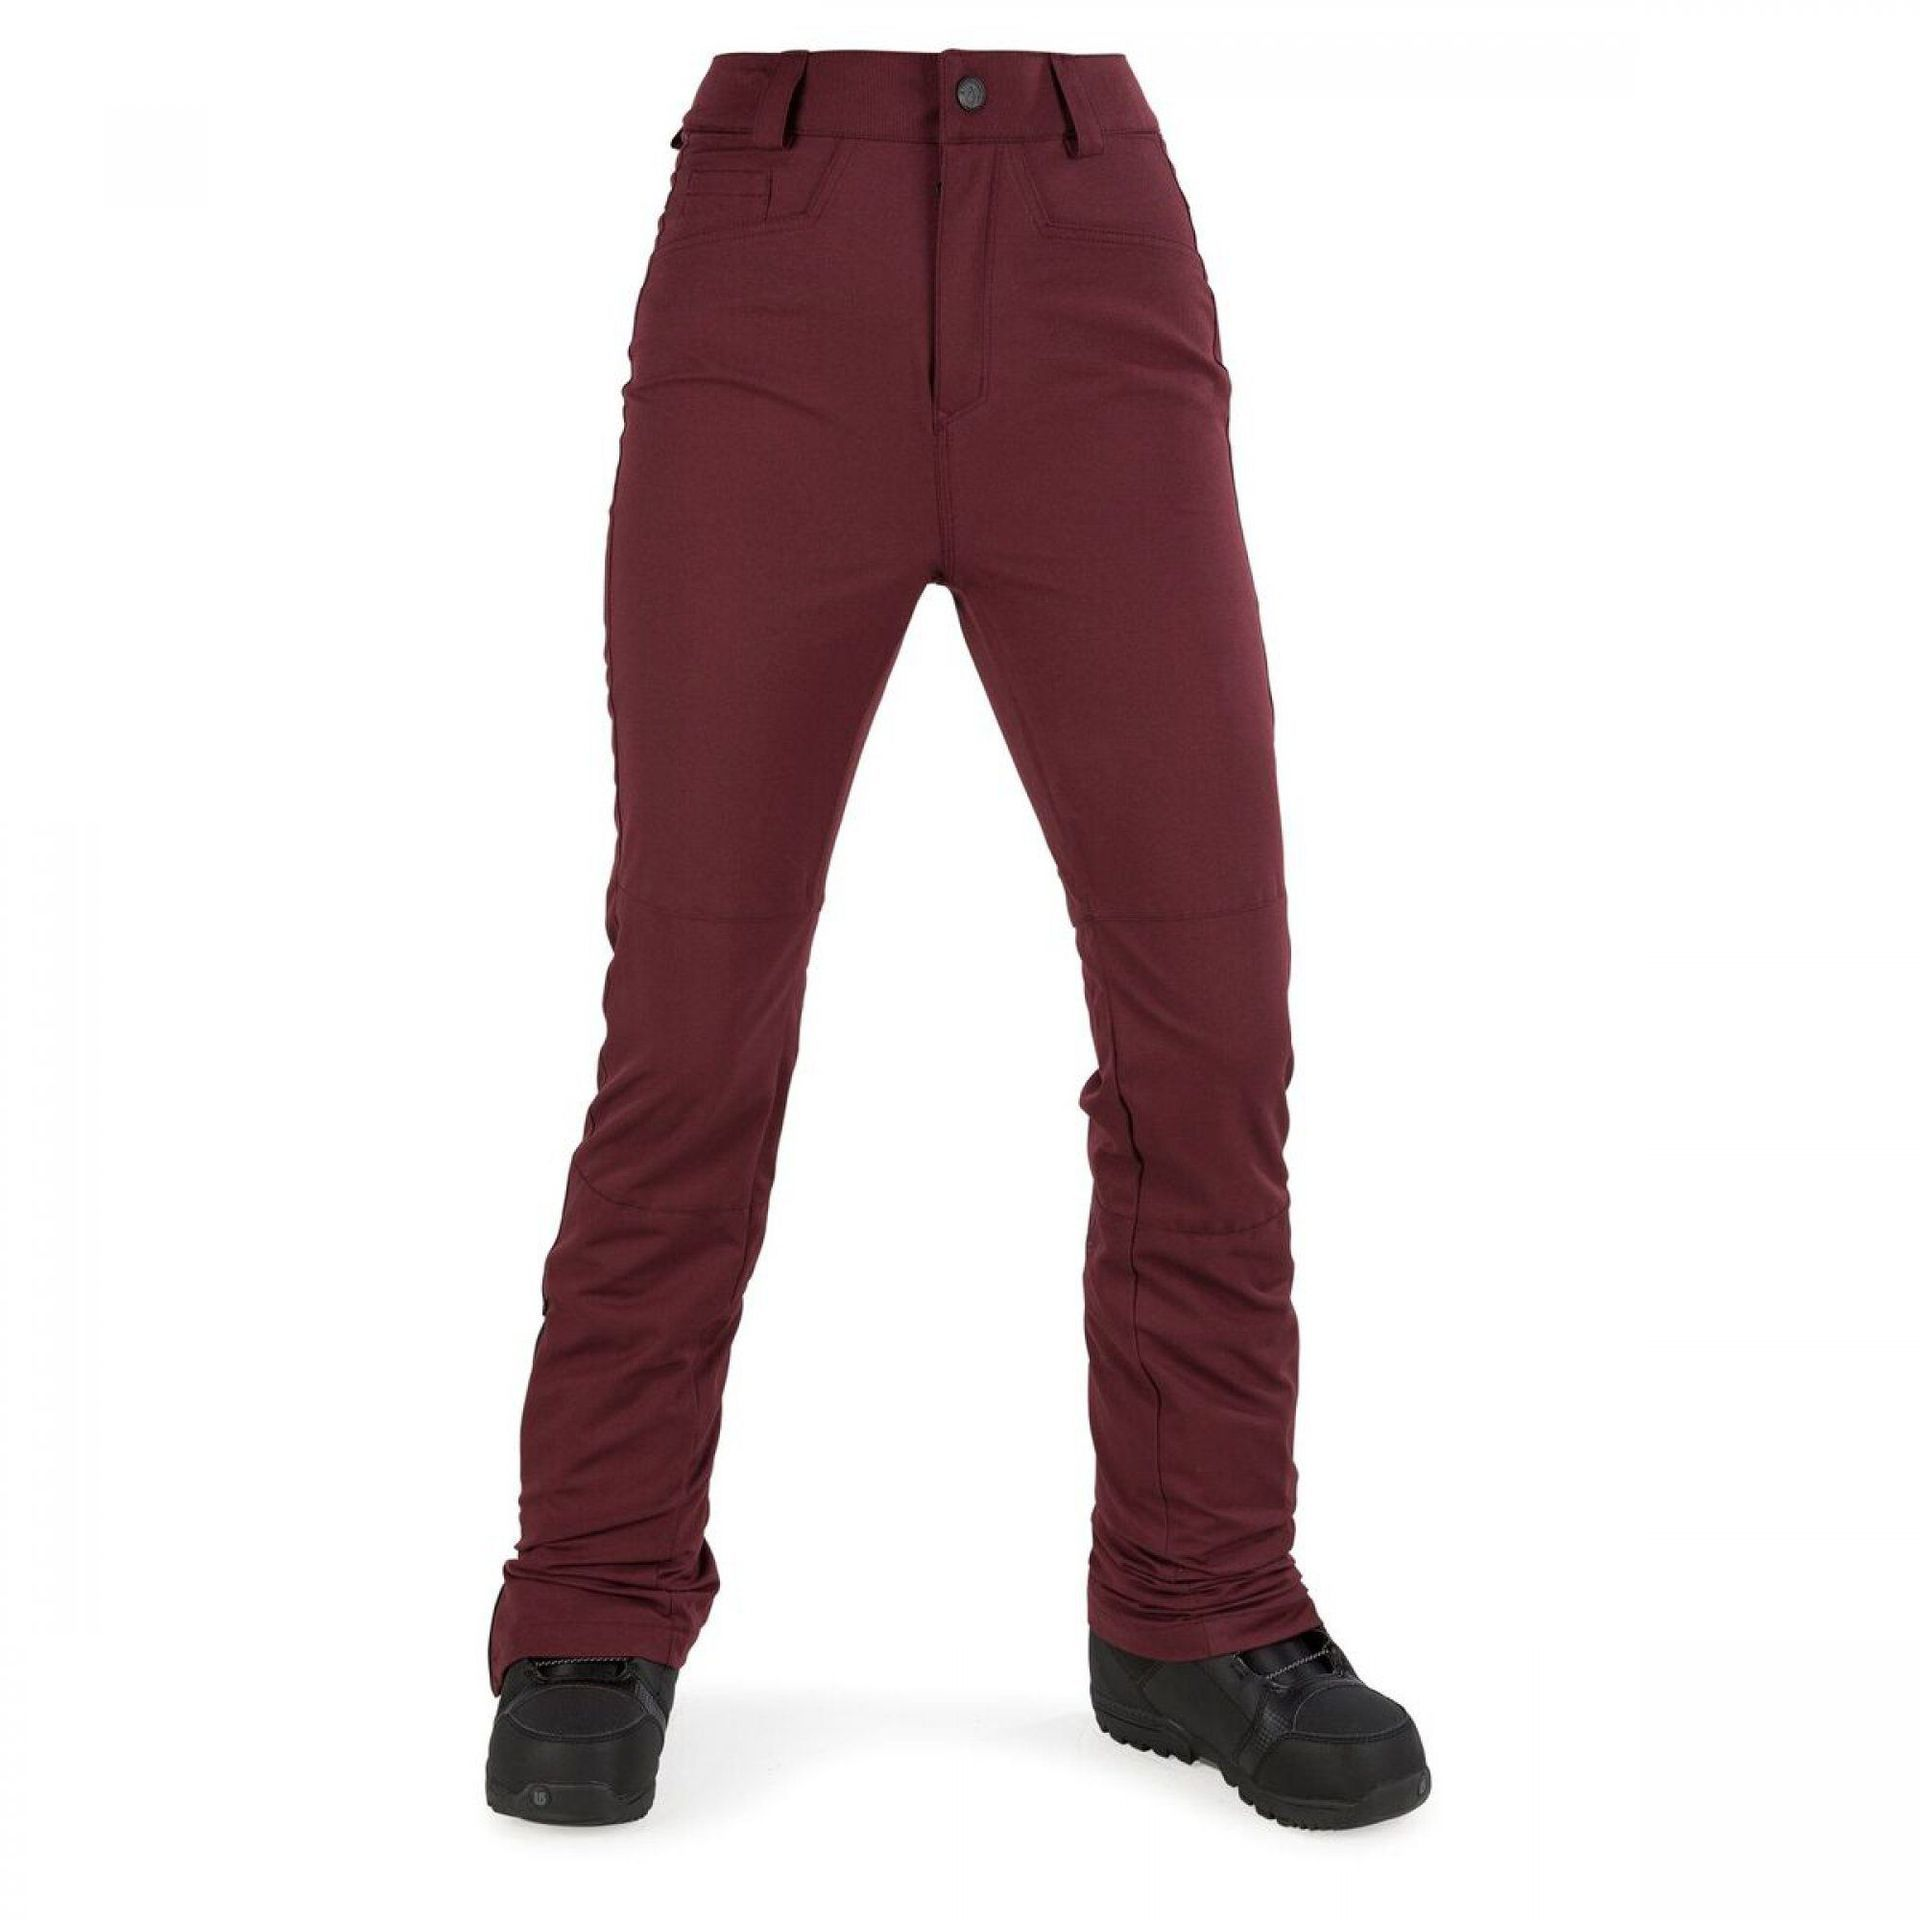 SPODNIE VOLCOM COAST PANT BLACK RED BRD